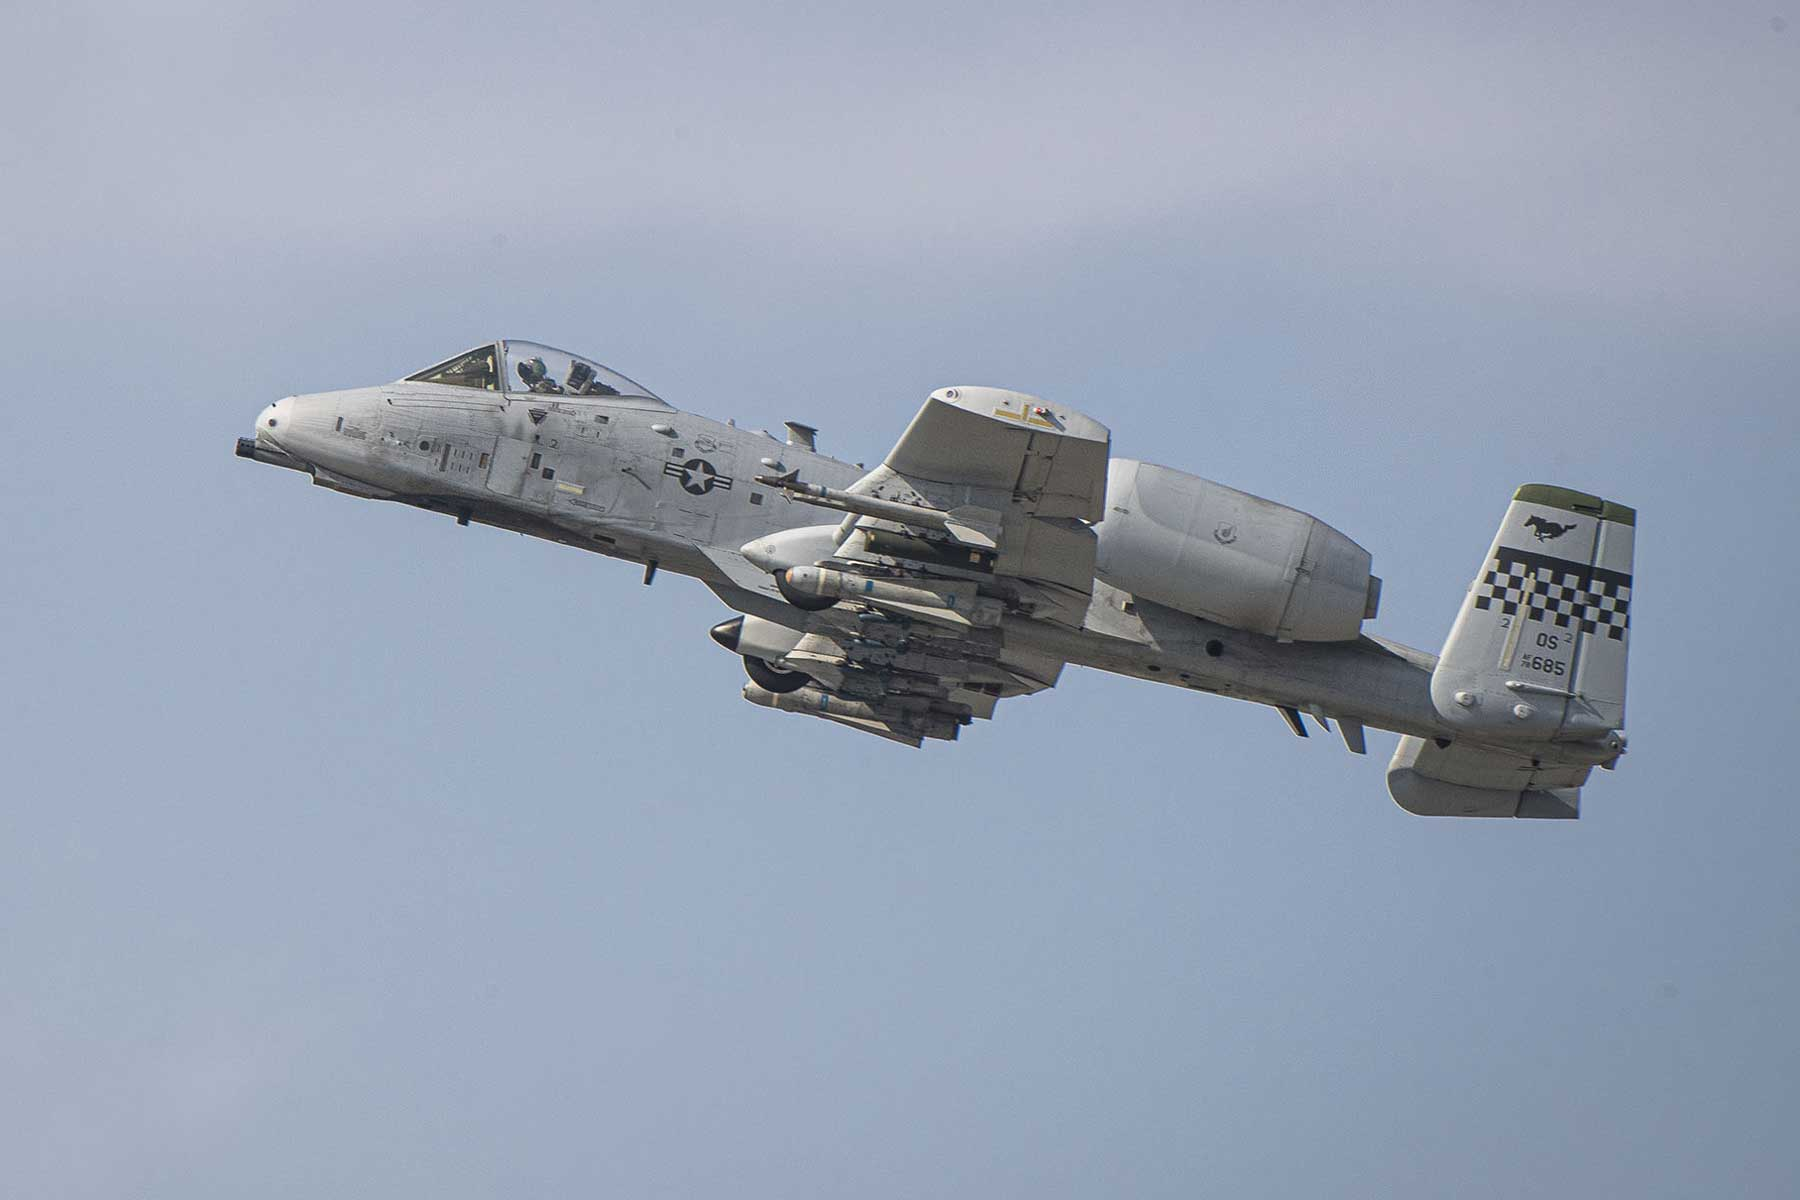 A-10 Accidentally Discharges Non-Explosive Munition Over South Korea